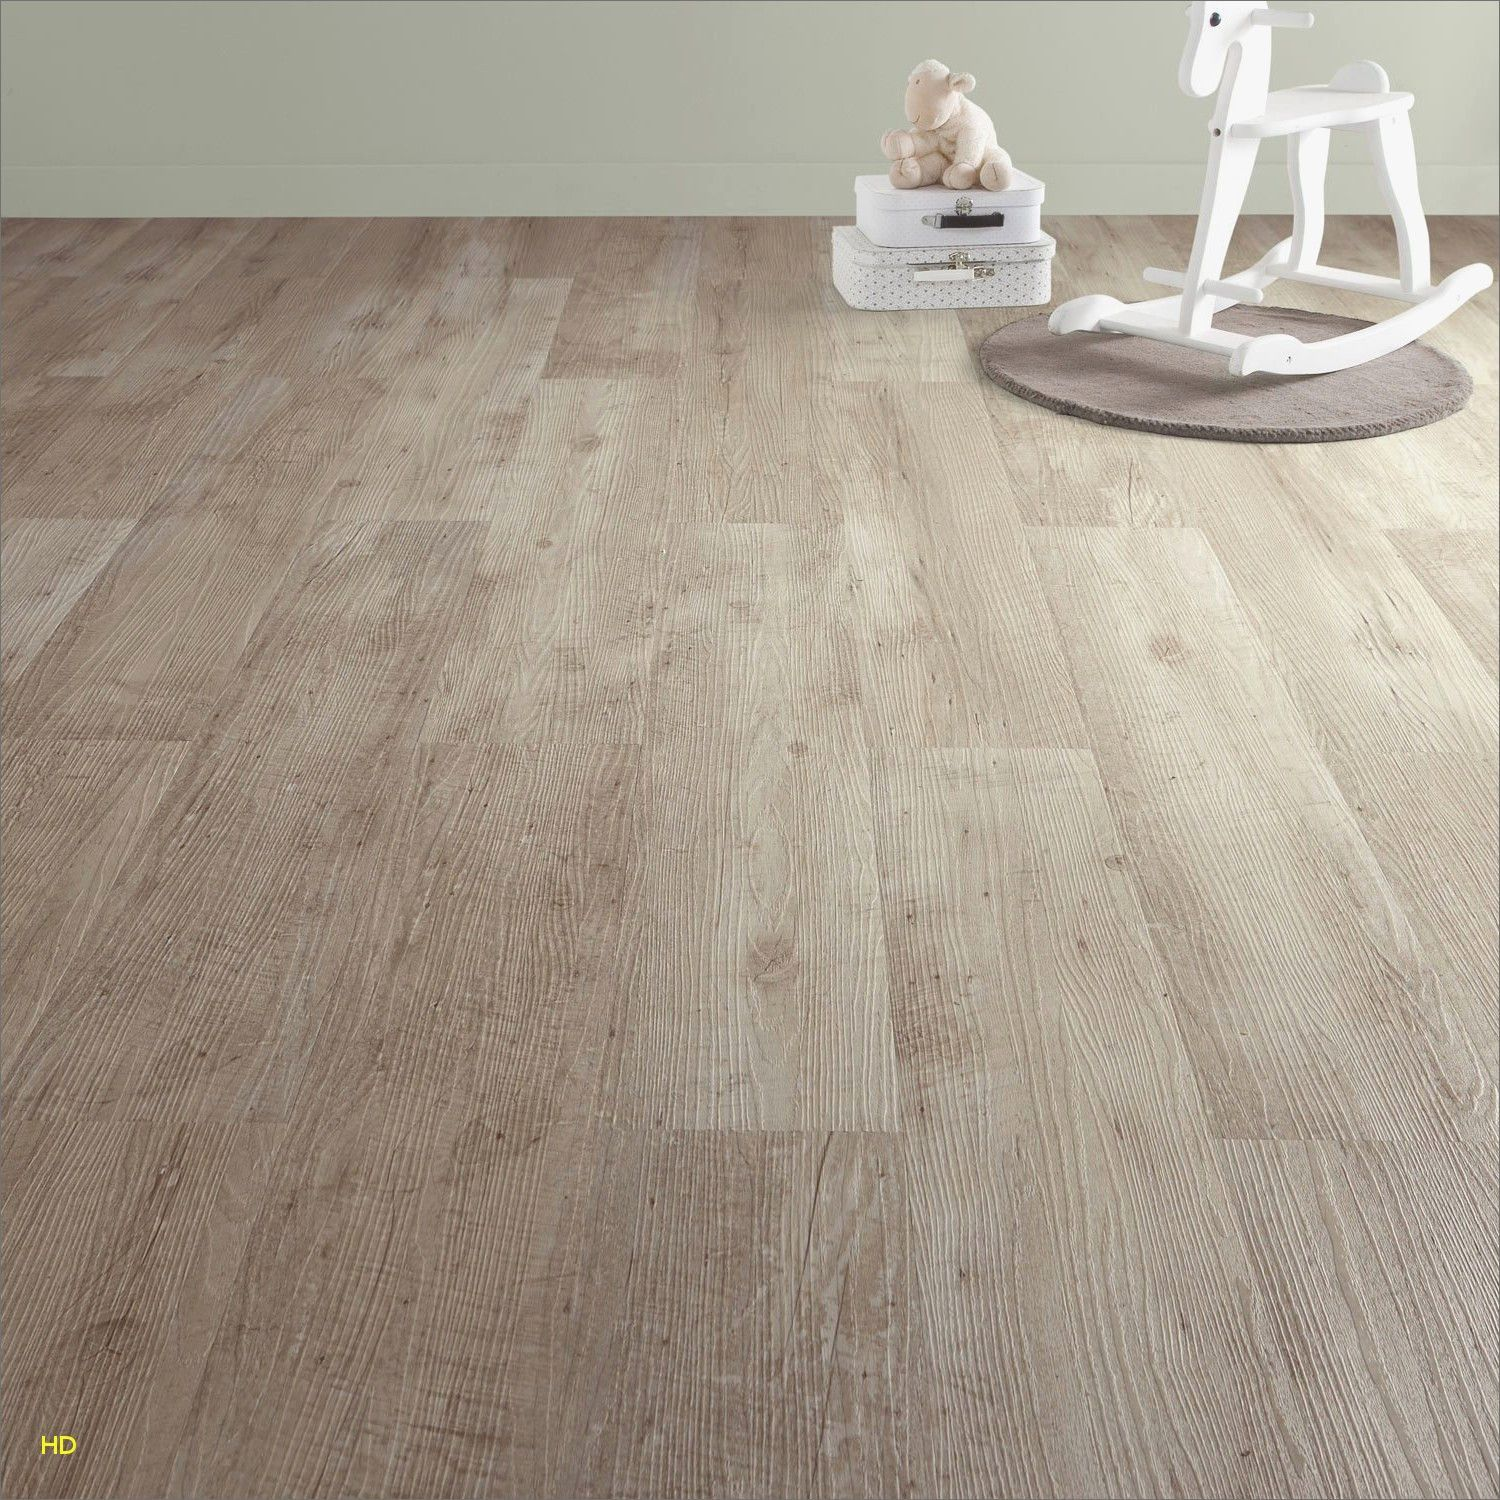 Luxury Castorama Revetement sol  Flooring, Decor, Home decor